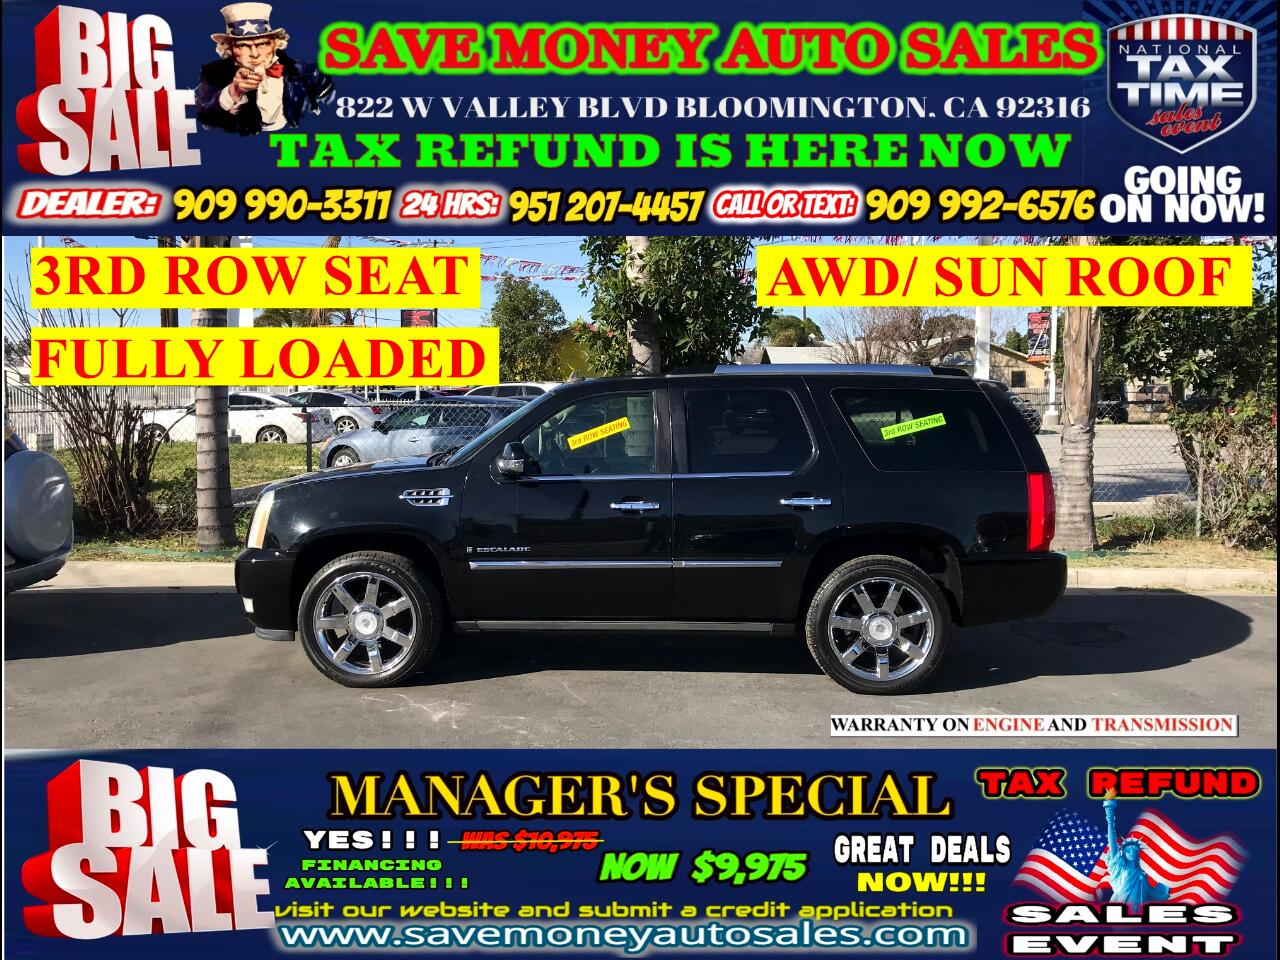 2007 Cadillac Escalade AWD>3RD ROW SEAT+TOTALLY LOADED>WE MEANT IT!!!!